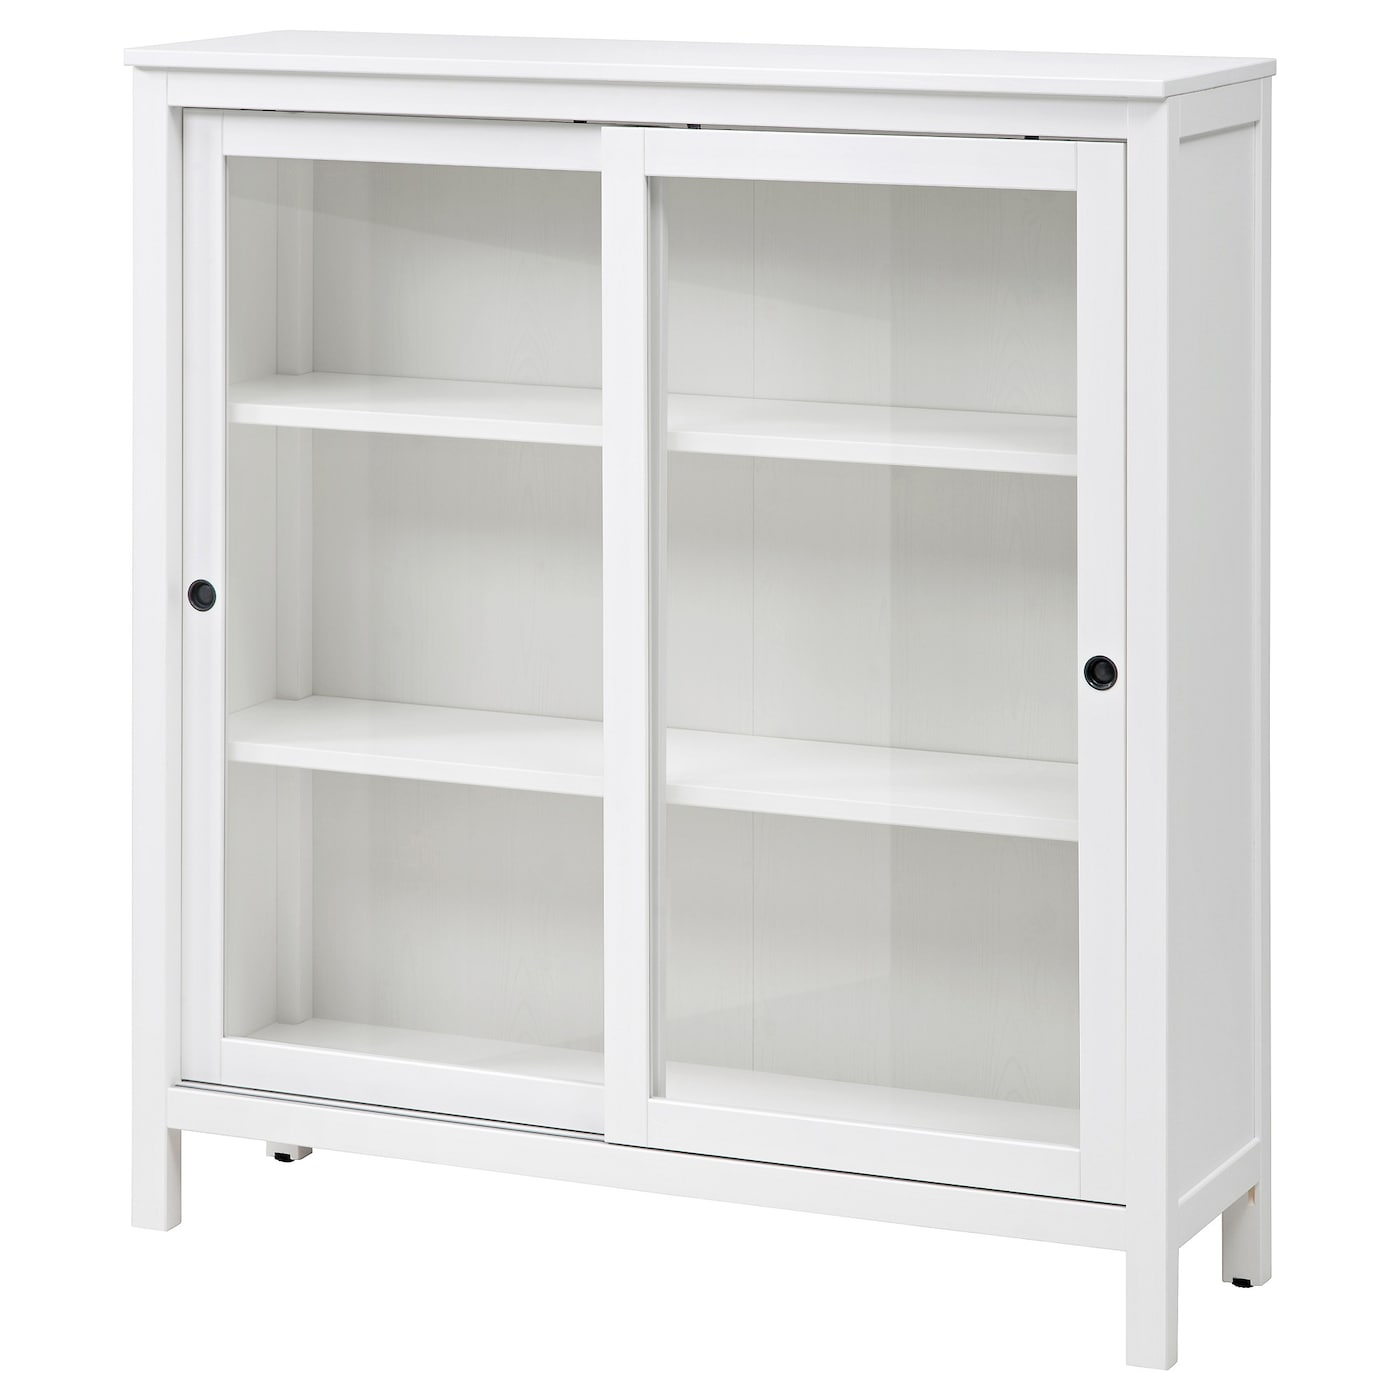 Hemnes Glass Door Cabinet White Stain 120 X 130 Cm Ikea